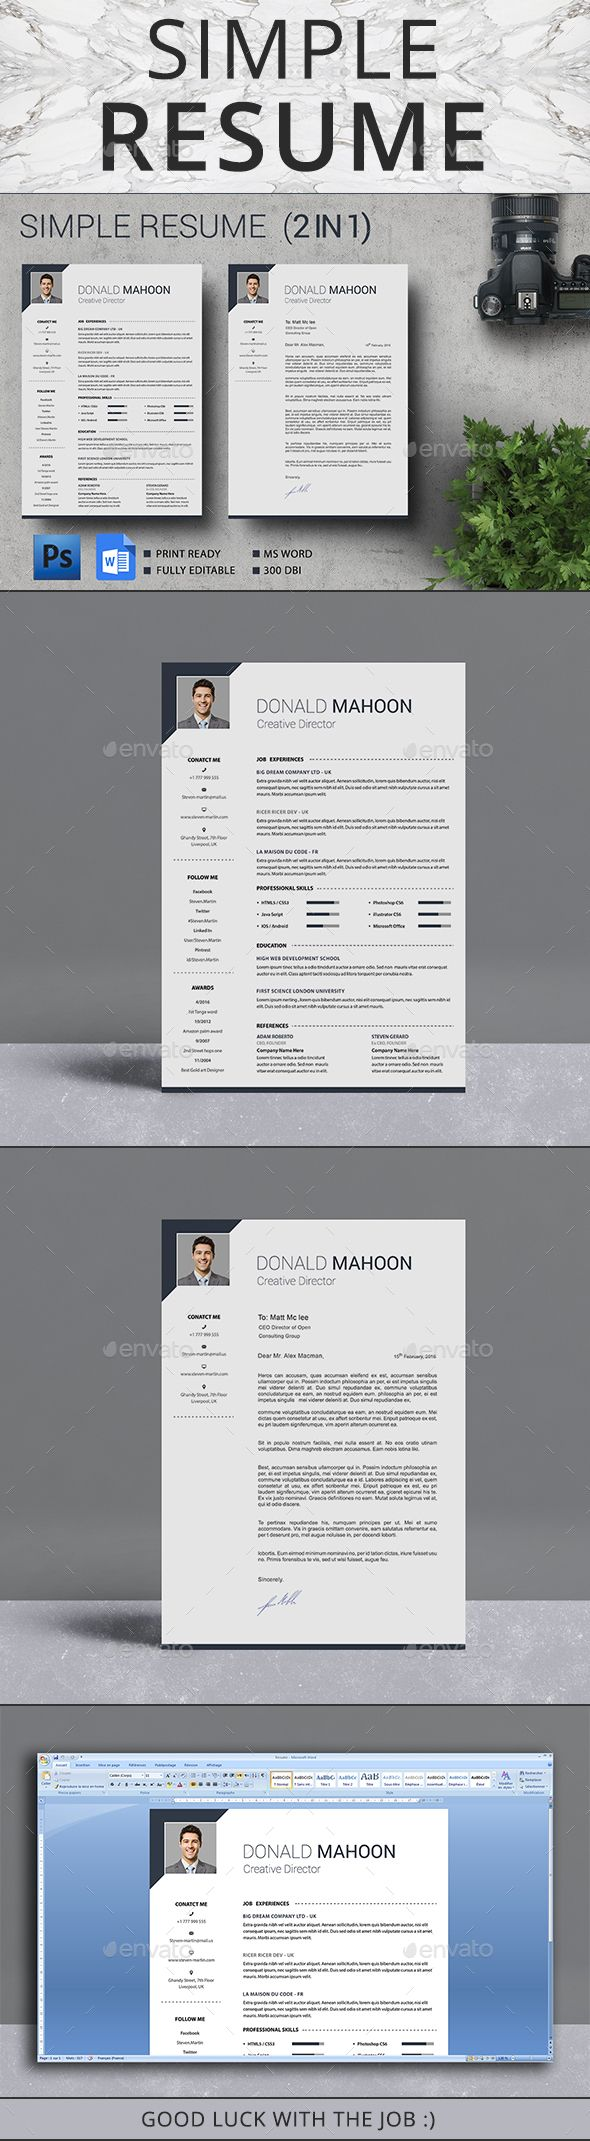 Resume 24 best Resume images on Pinterest